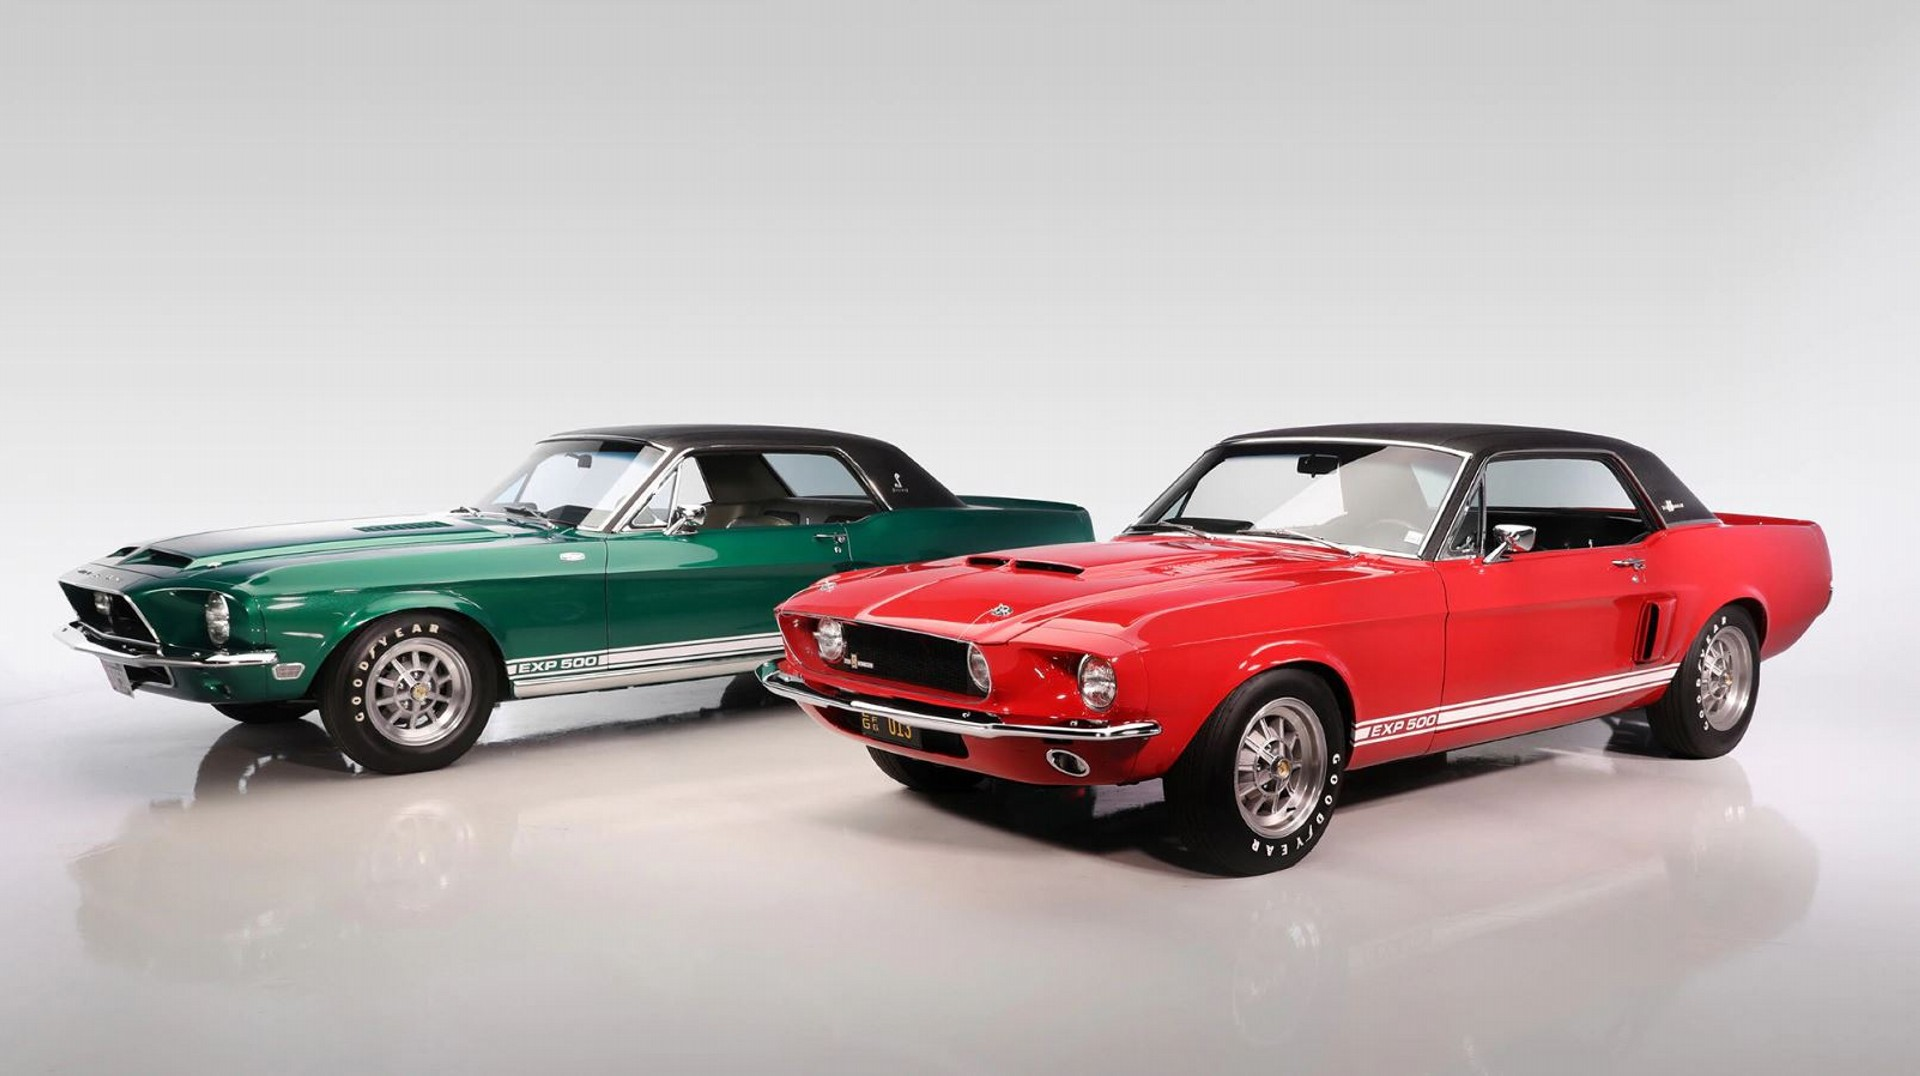 1967 Shelby GT500 Little Red y 1967 Shelby GT500 Green Hornet